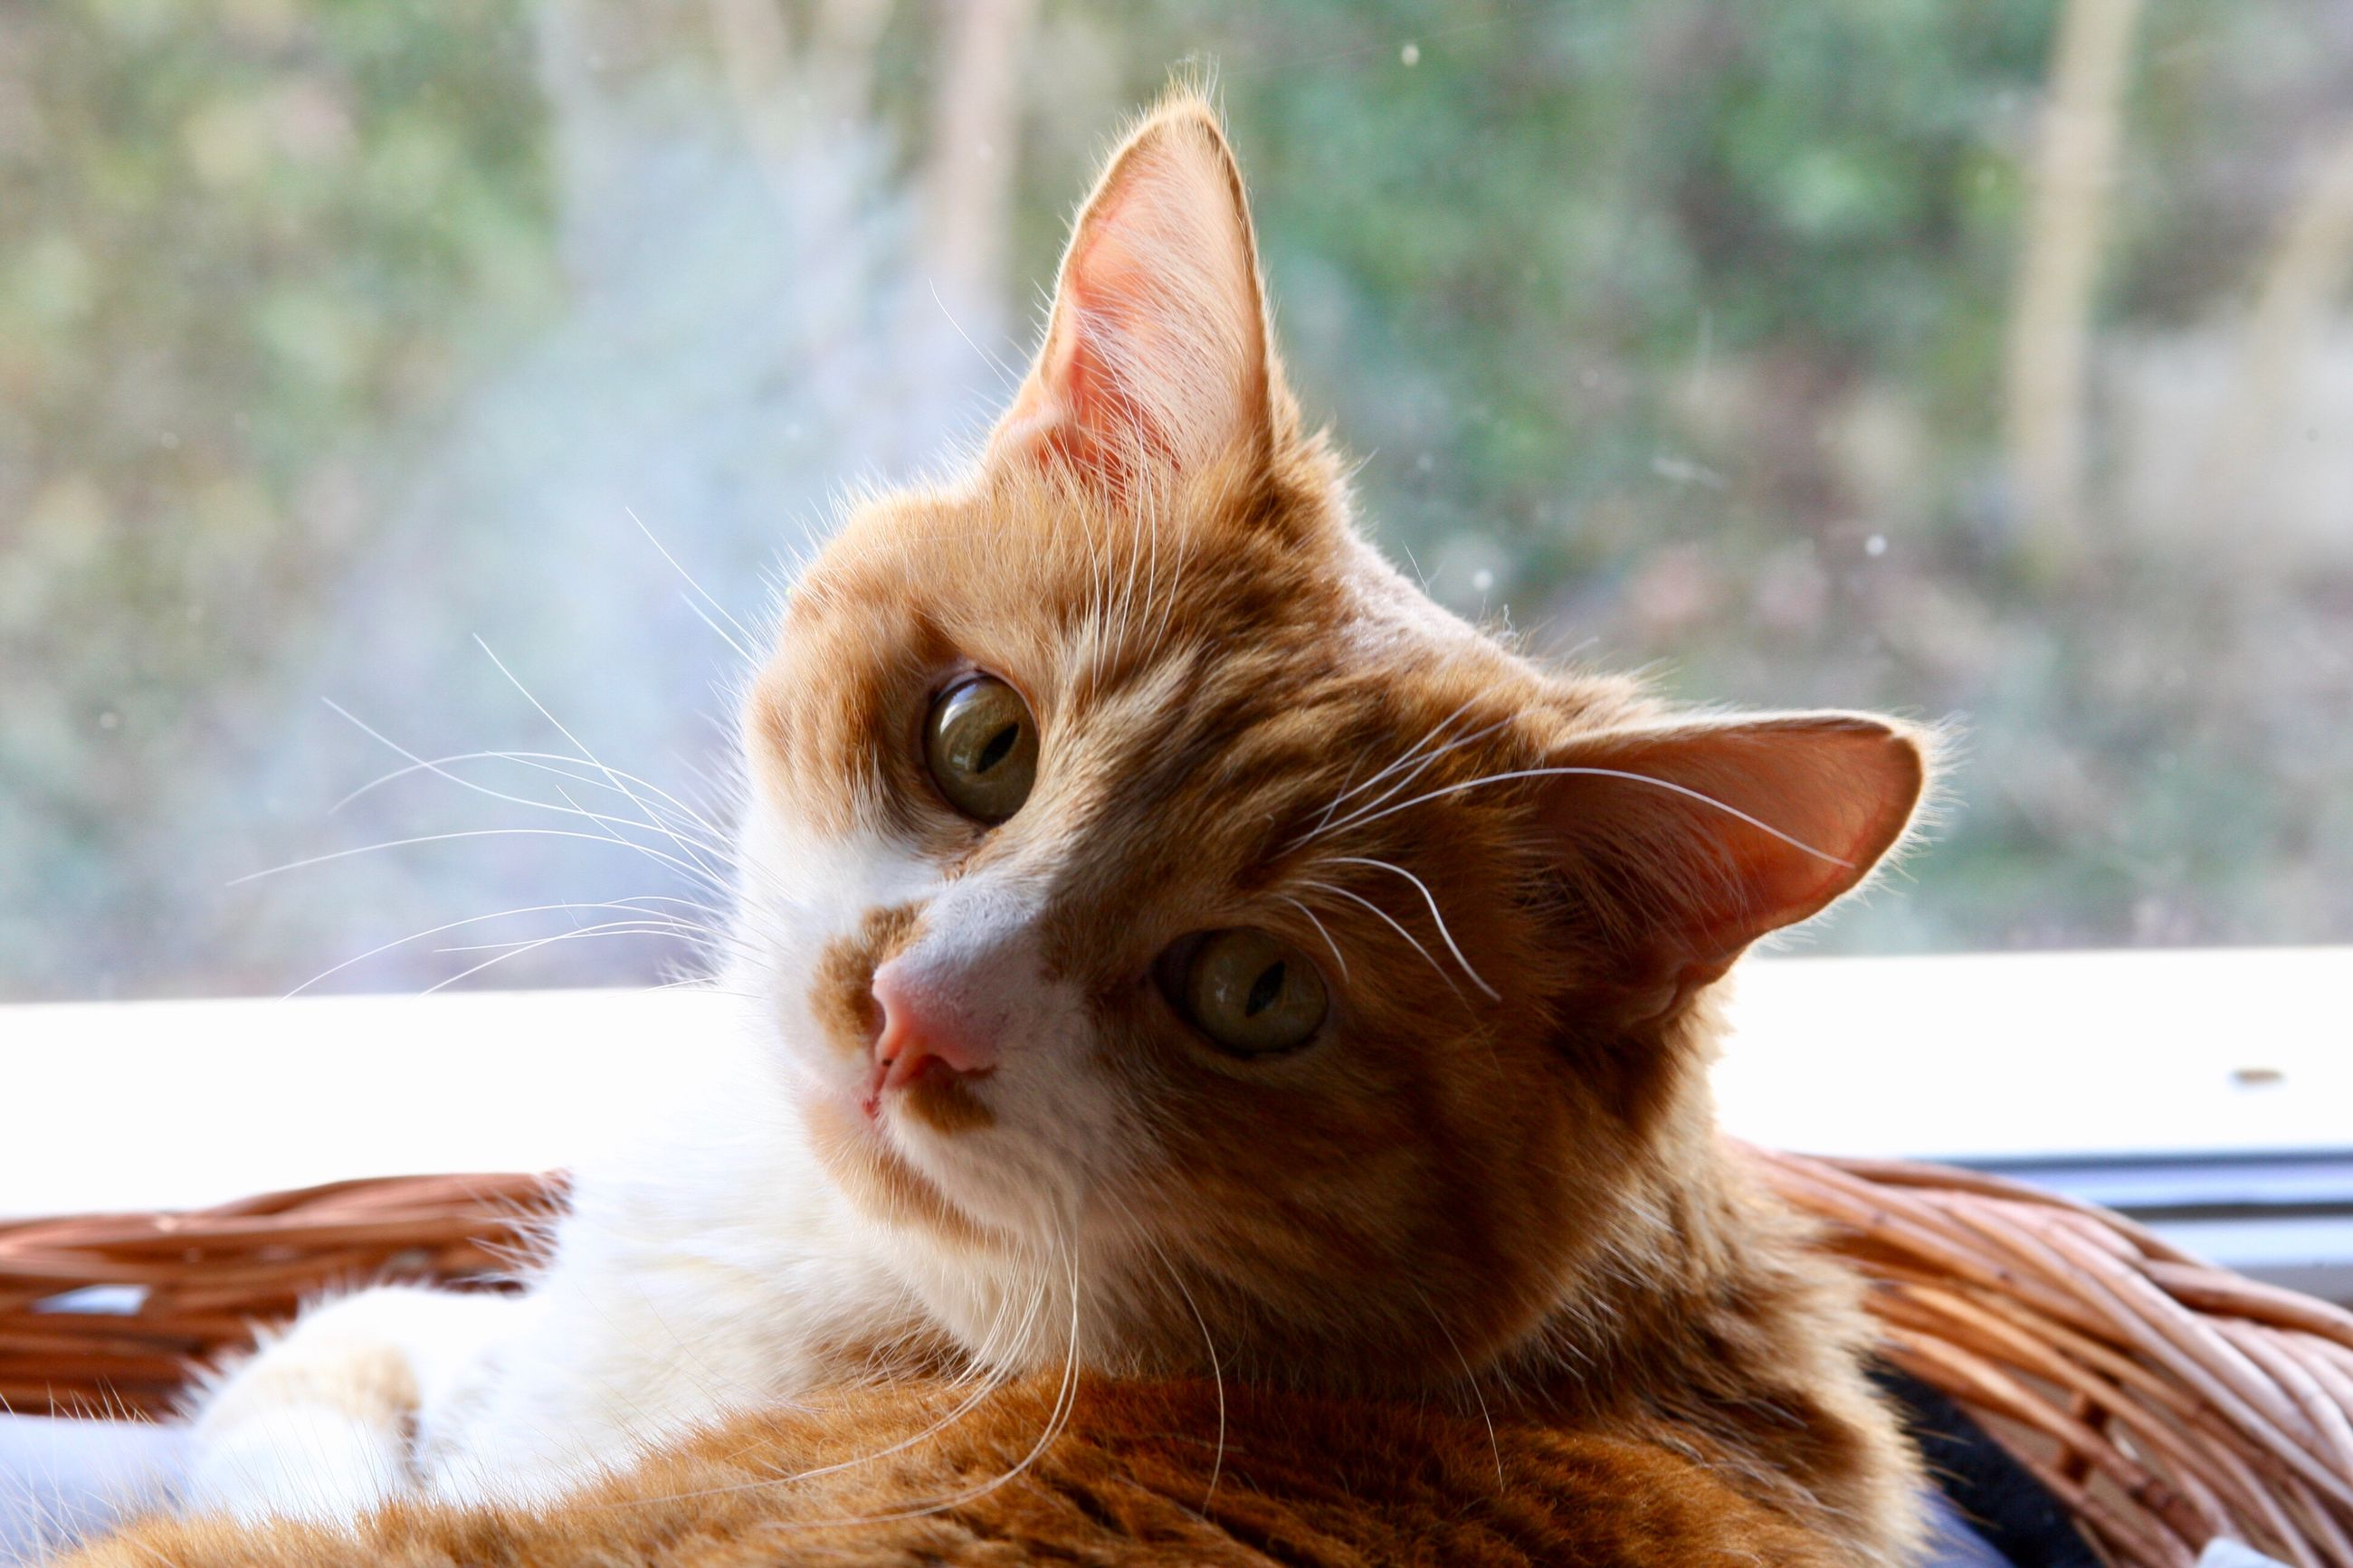 pets, domestic animals, one animal, animal themes, domestic cat, mammal, feline, whisker, portrait, no people, day, close-up, ginger cat, indoors